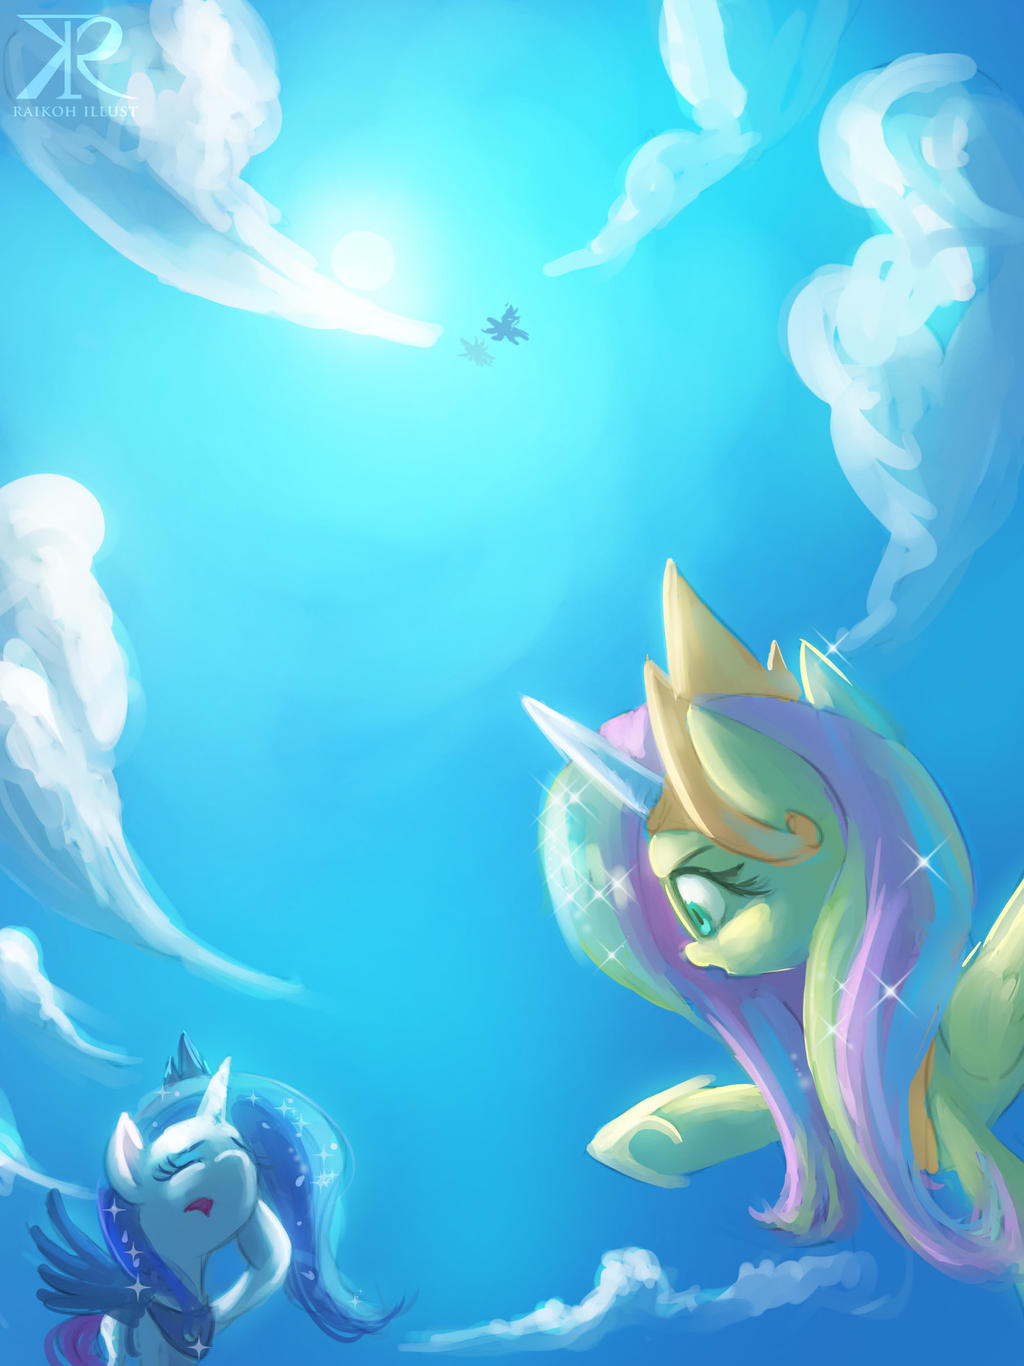 I Banish you to the Moon by Raikoh-illust